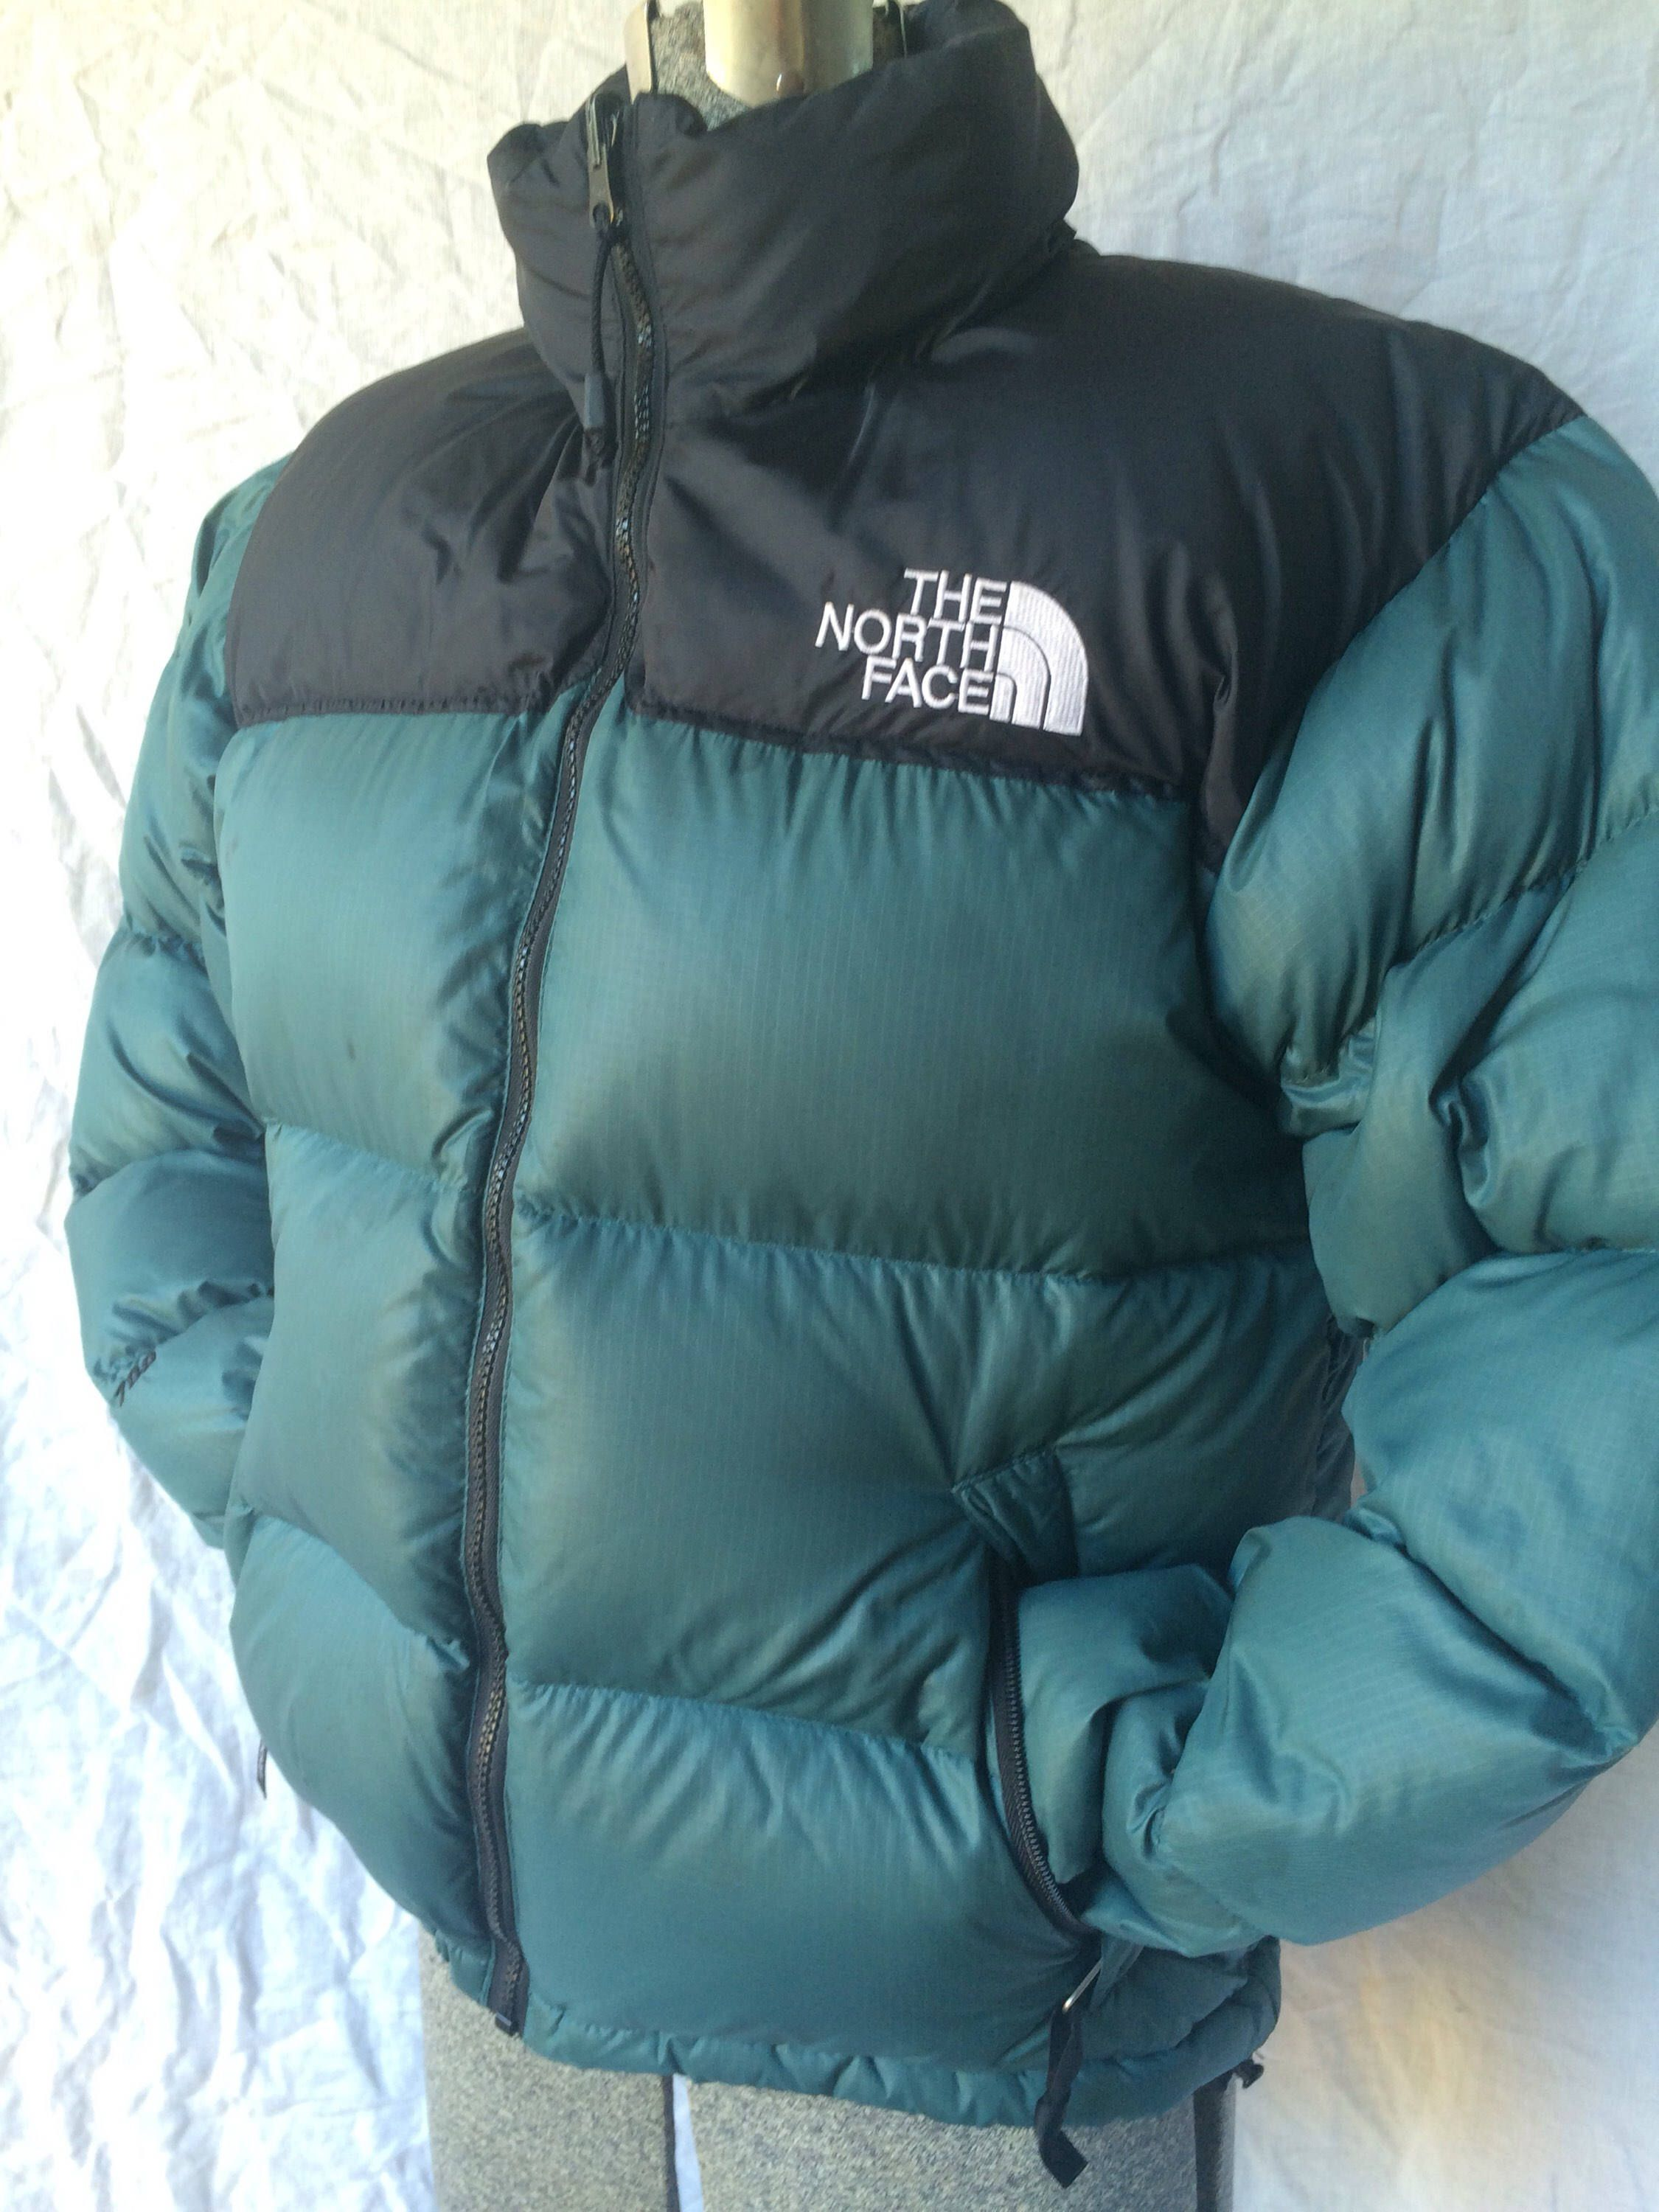 Pin by FLANNELshack on Vintage north face  f537c6184